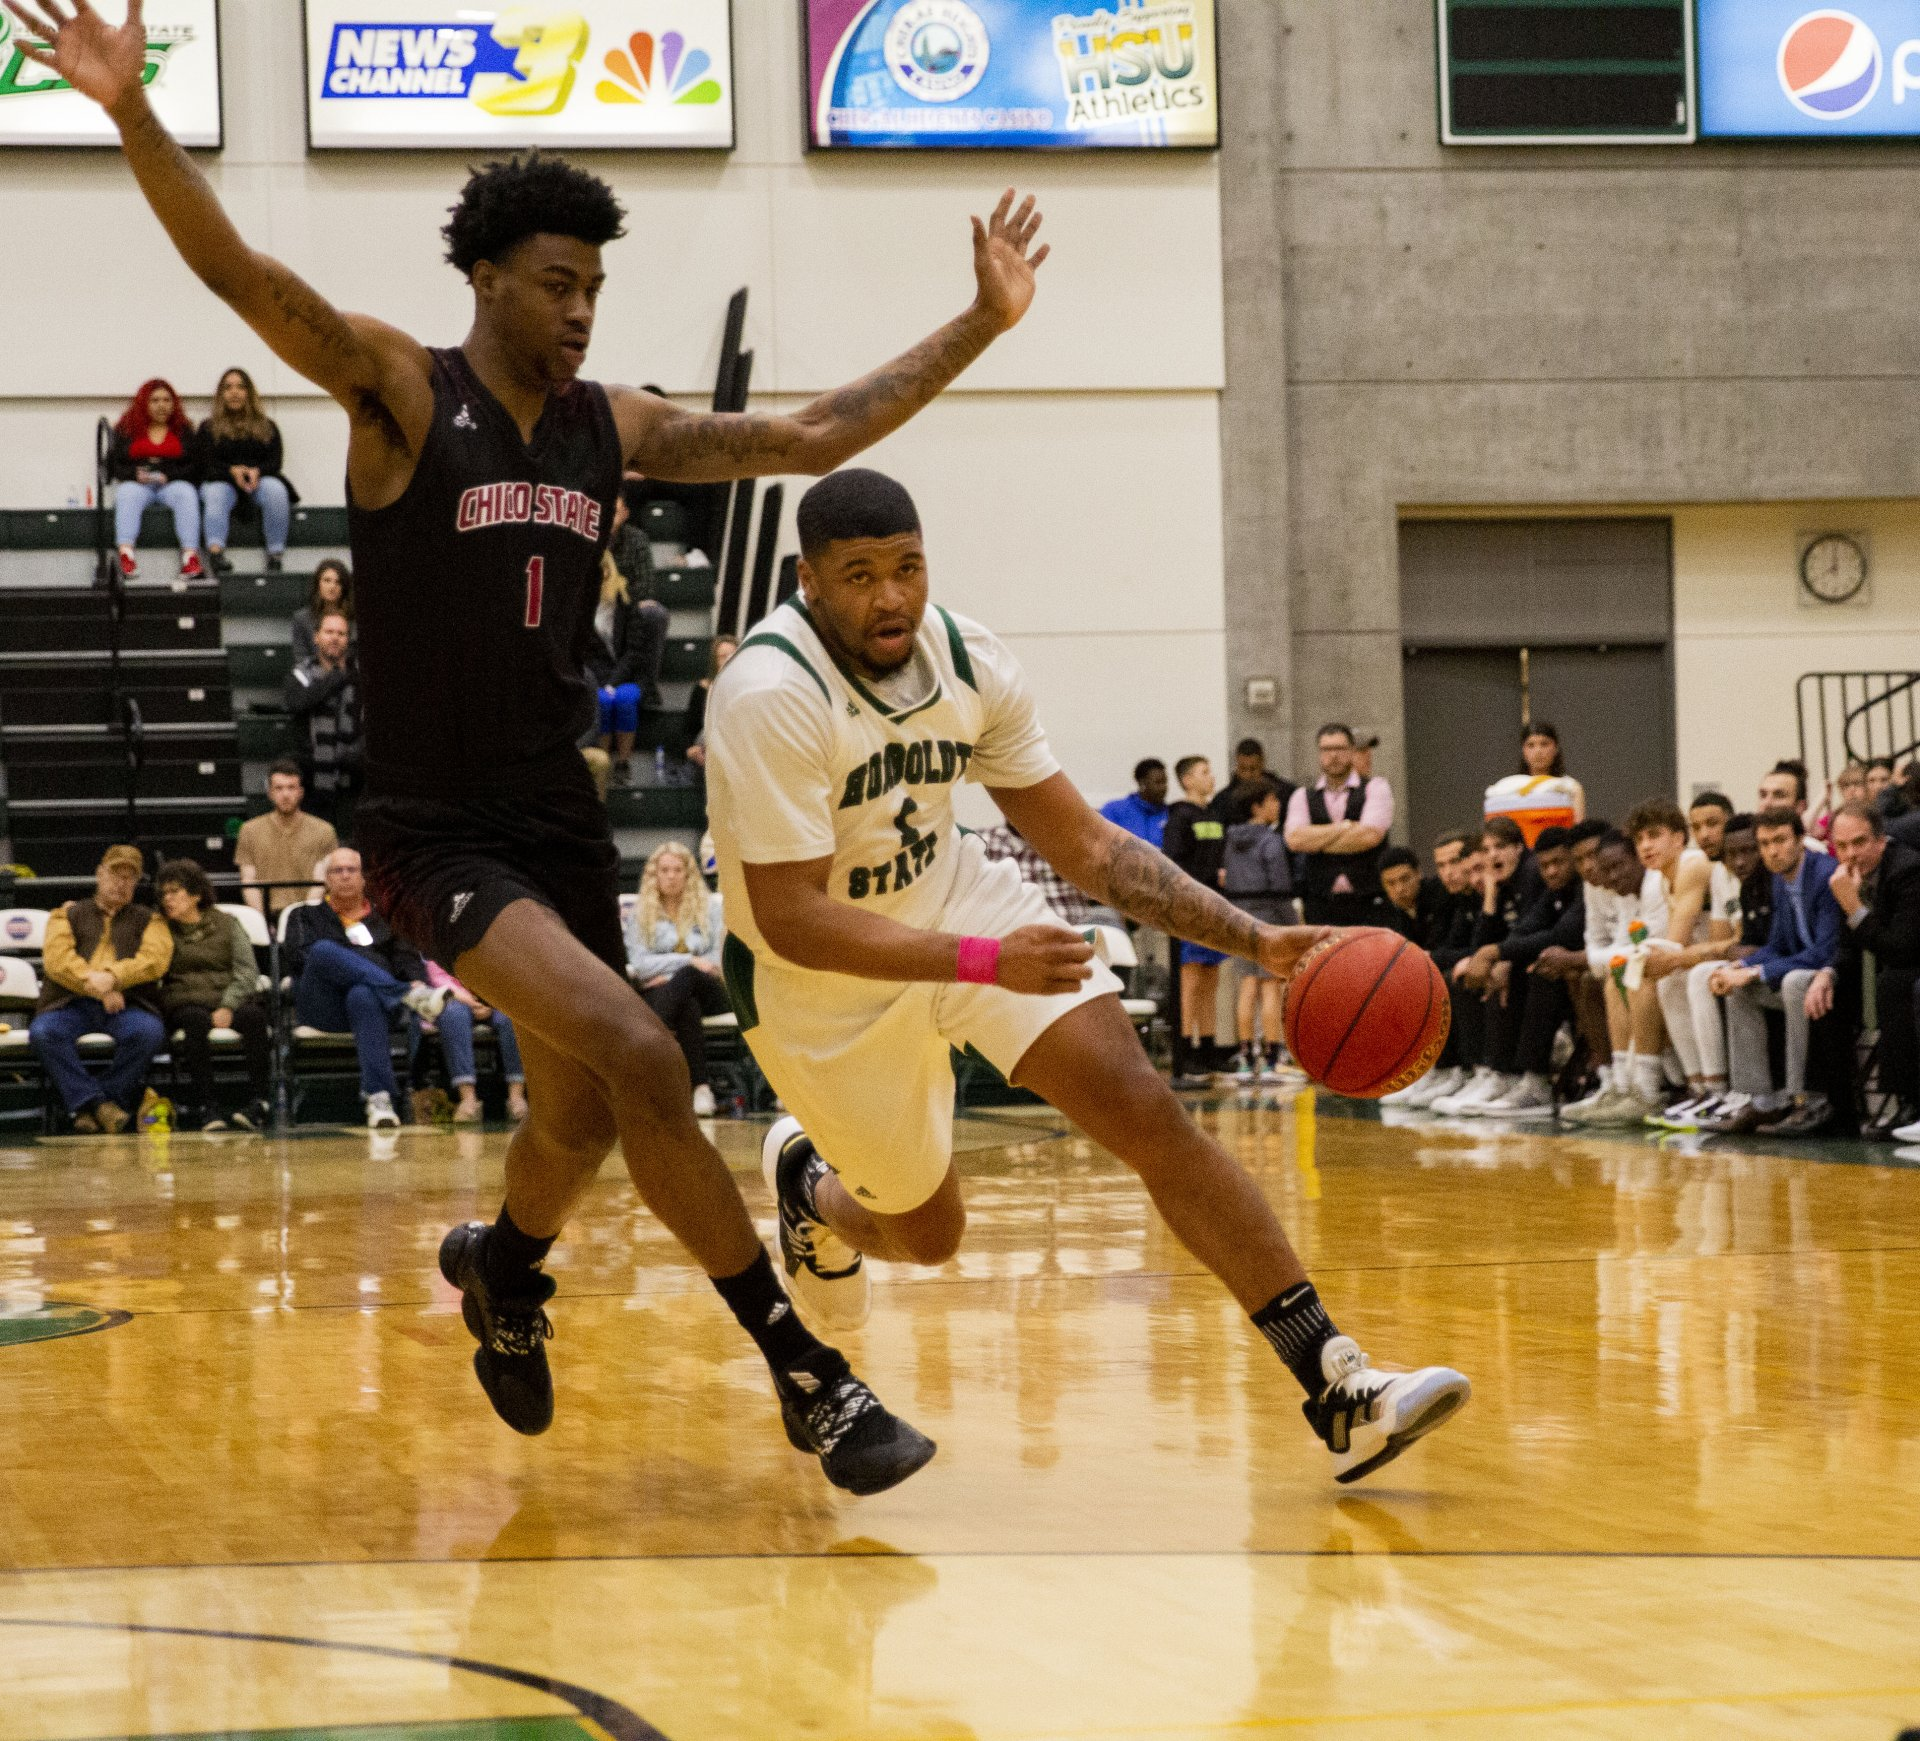 Senior guard Rob Lewis drives toward the basket against Chico State during Humboldt State's game at Lumberjack Arena on Feb. 27 | Photo by Thomas Lal